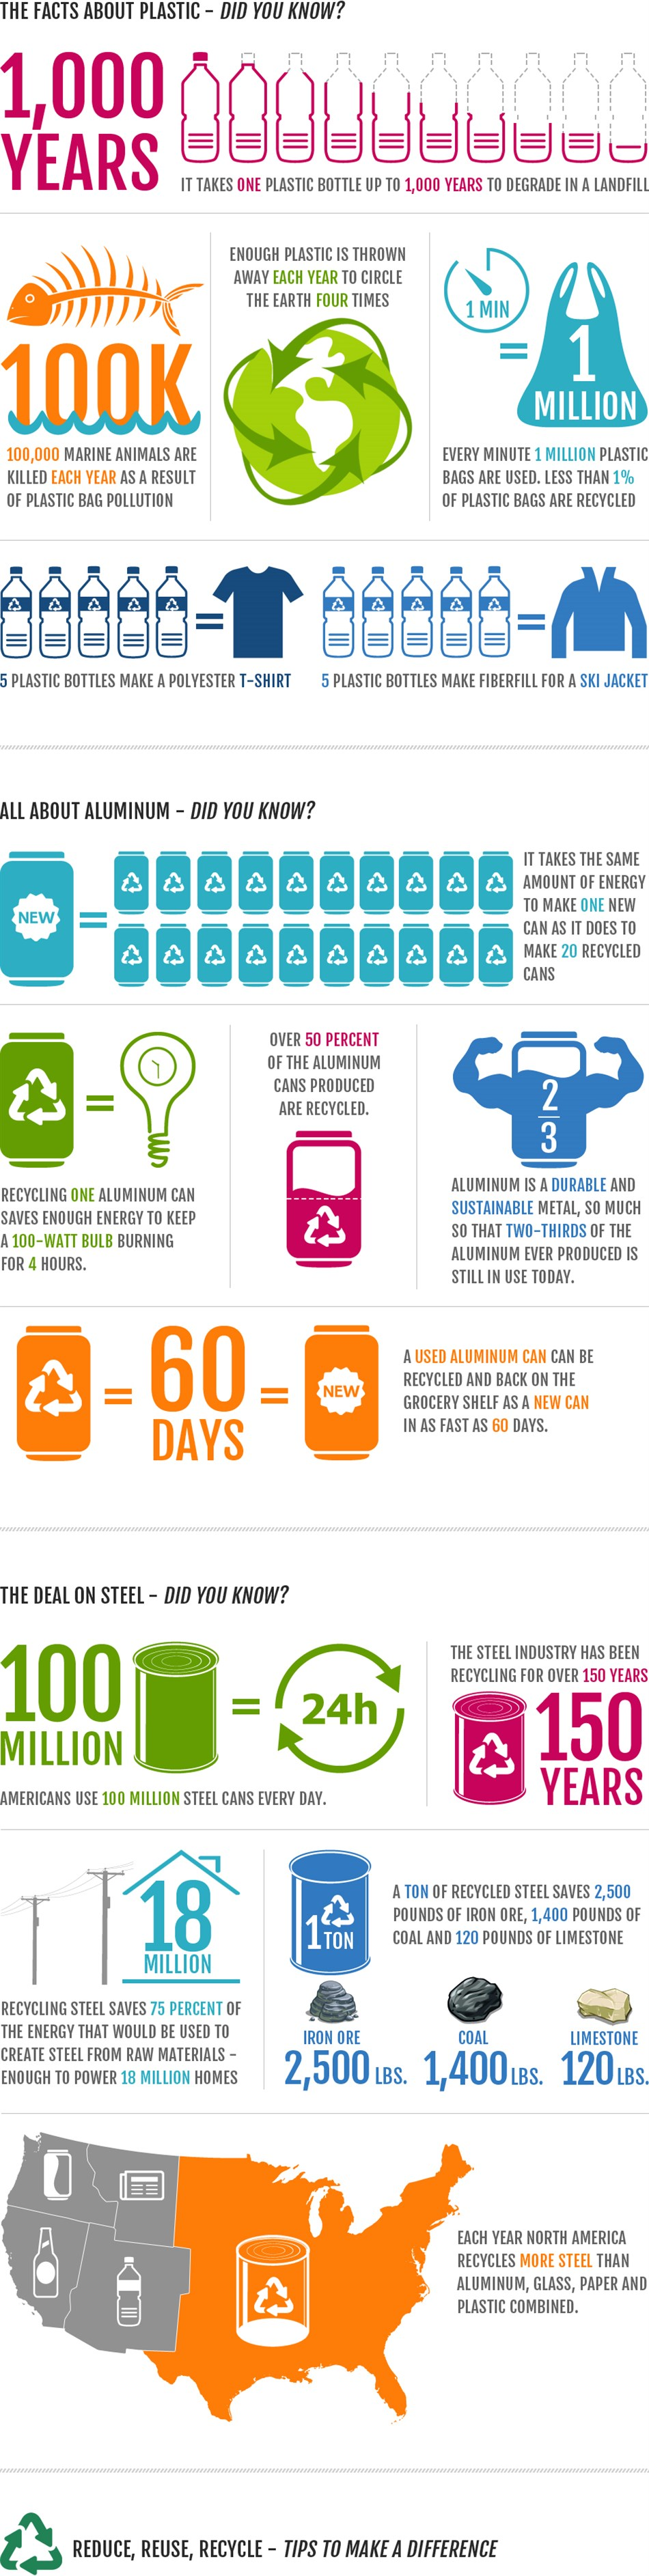 Recycling Facts and Trivia Infographic